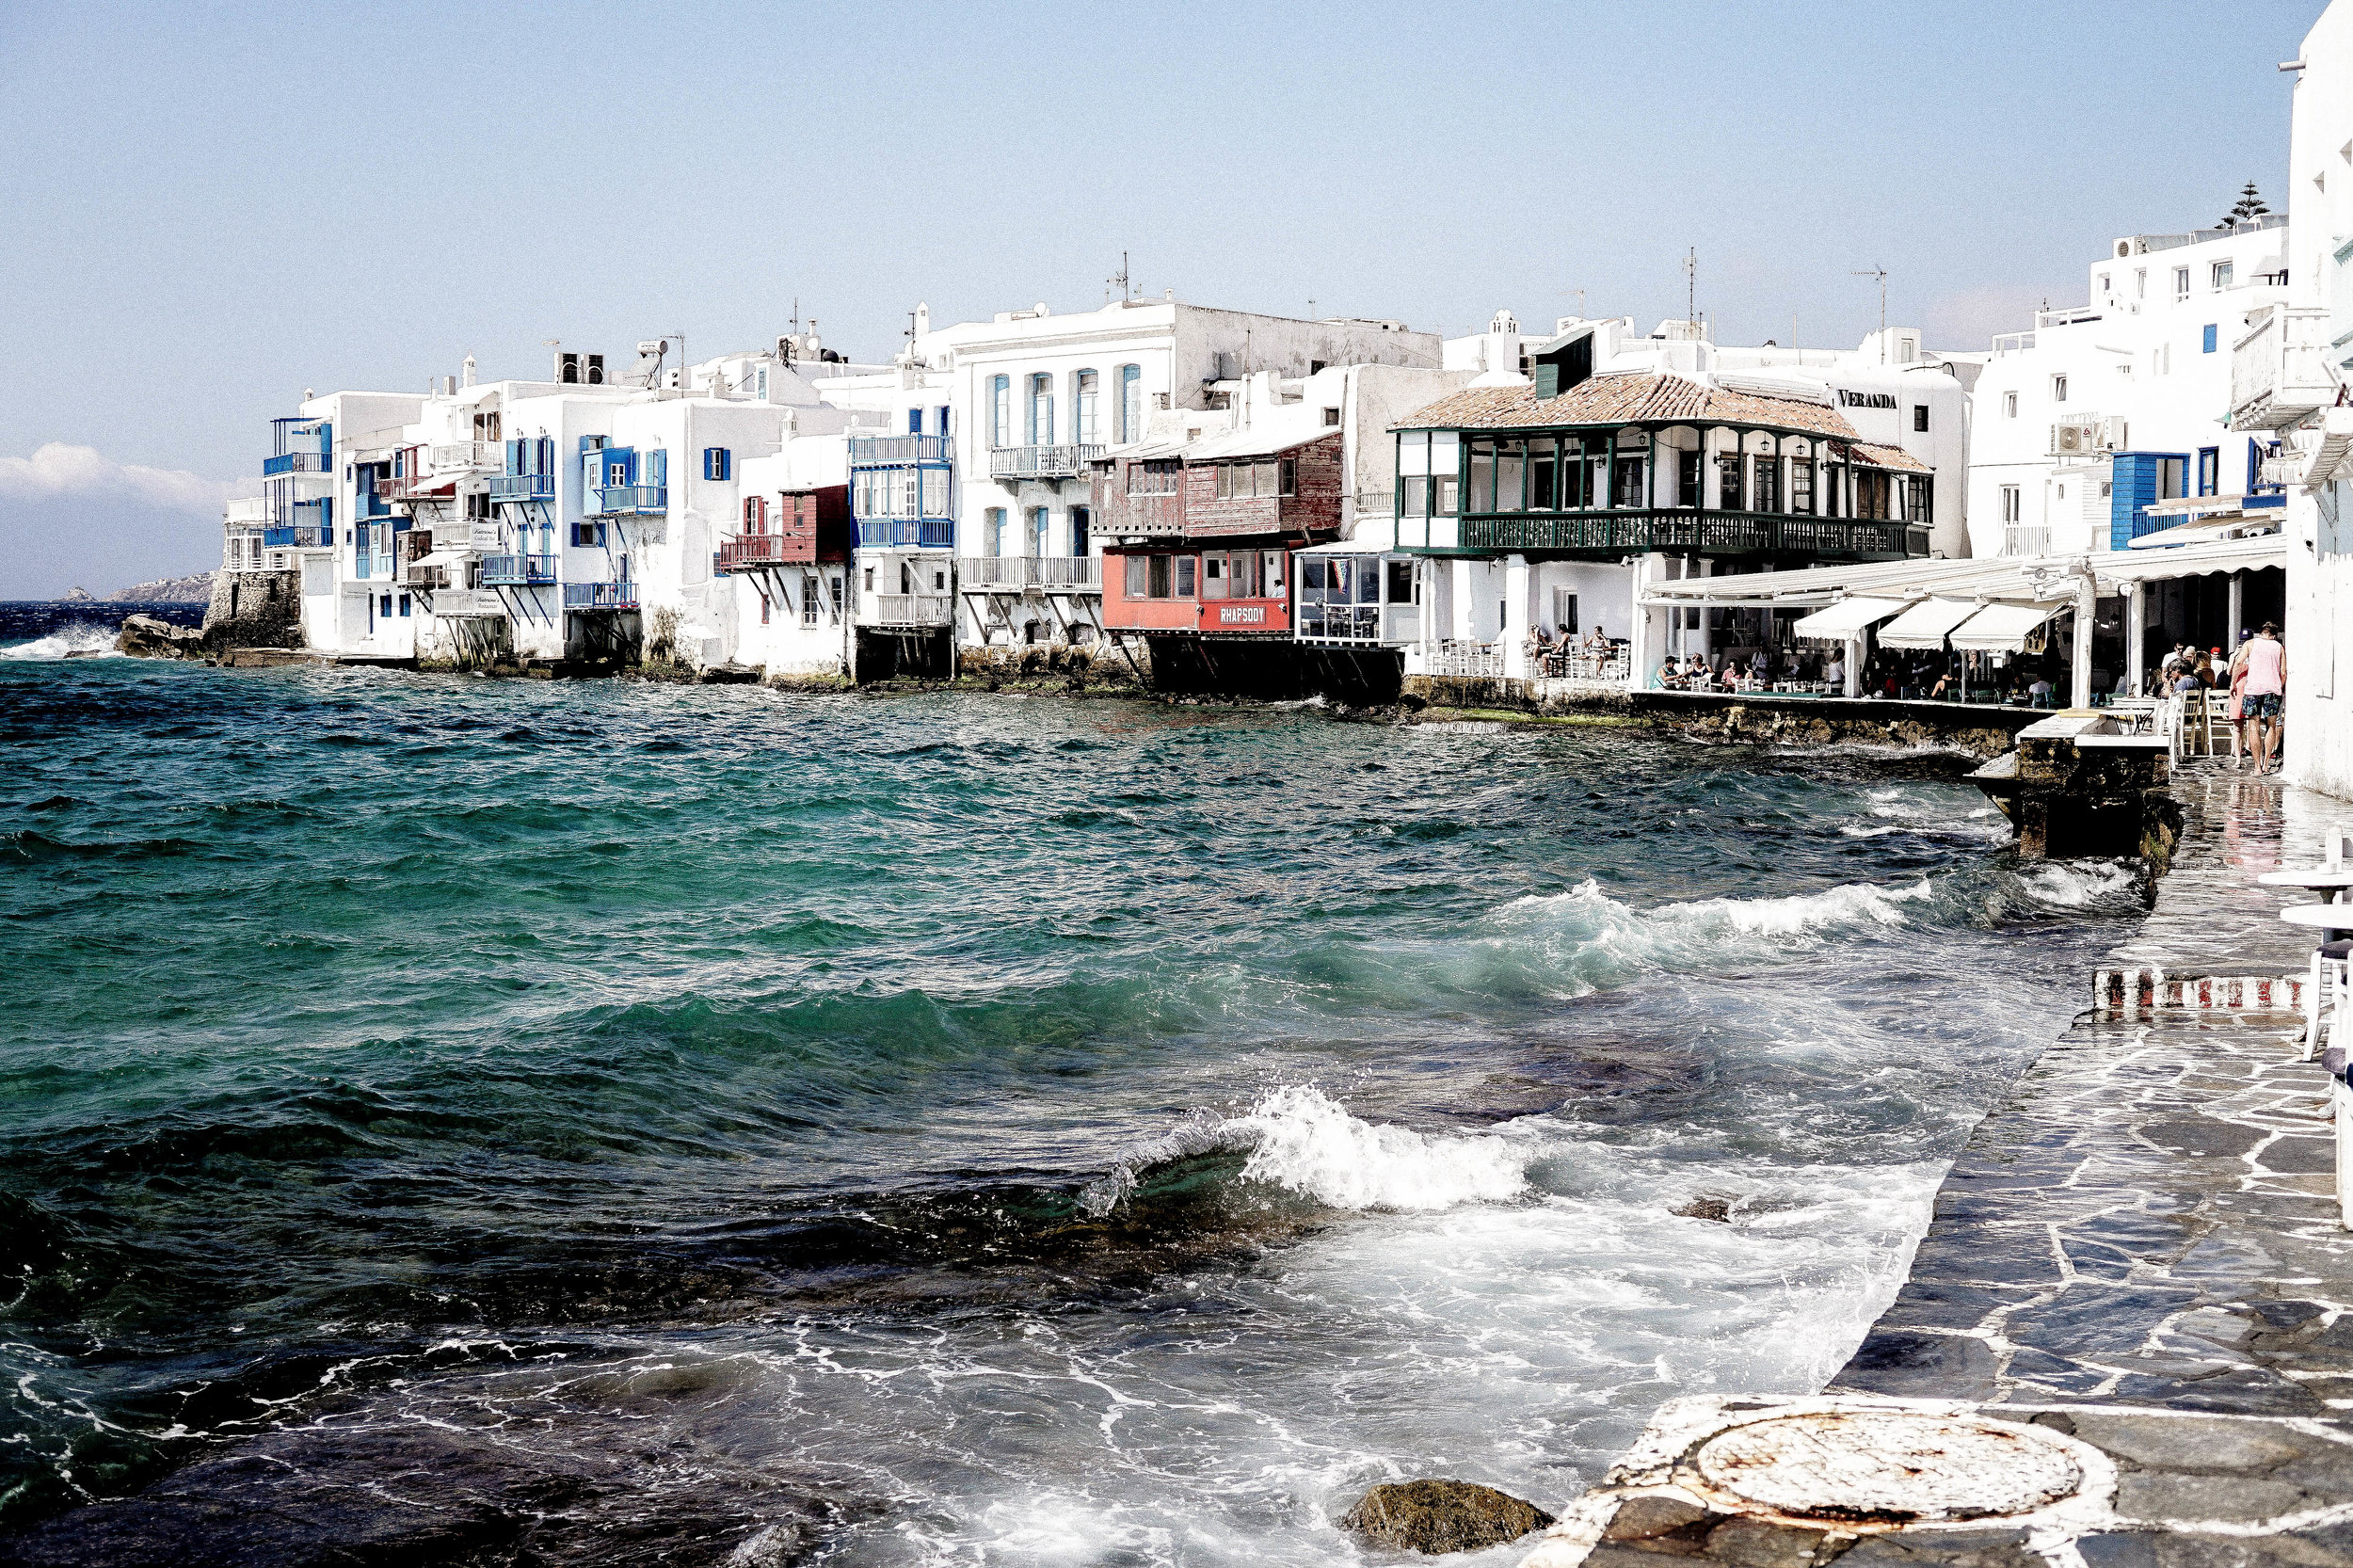 Town of Mykonos, Greece